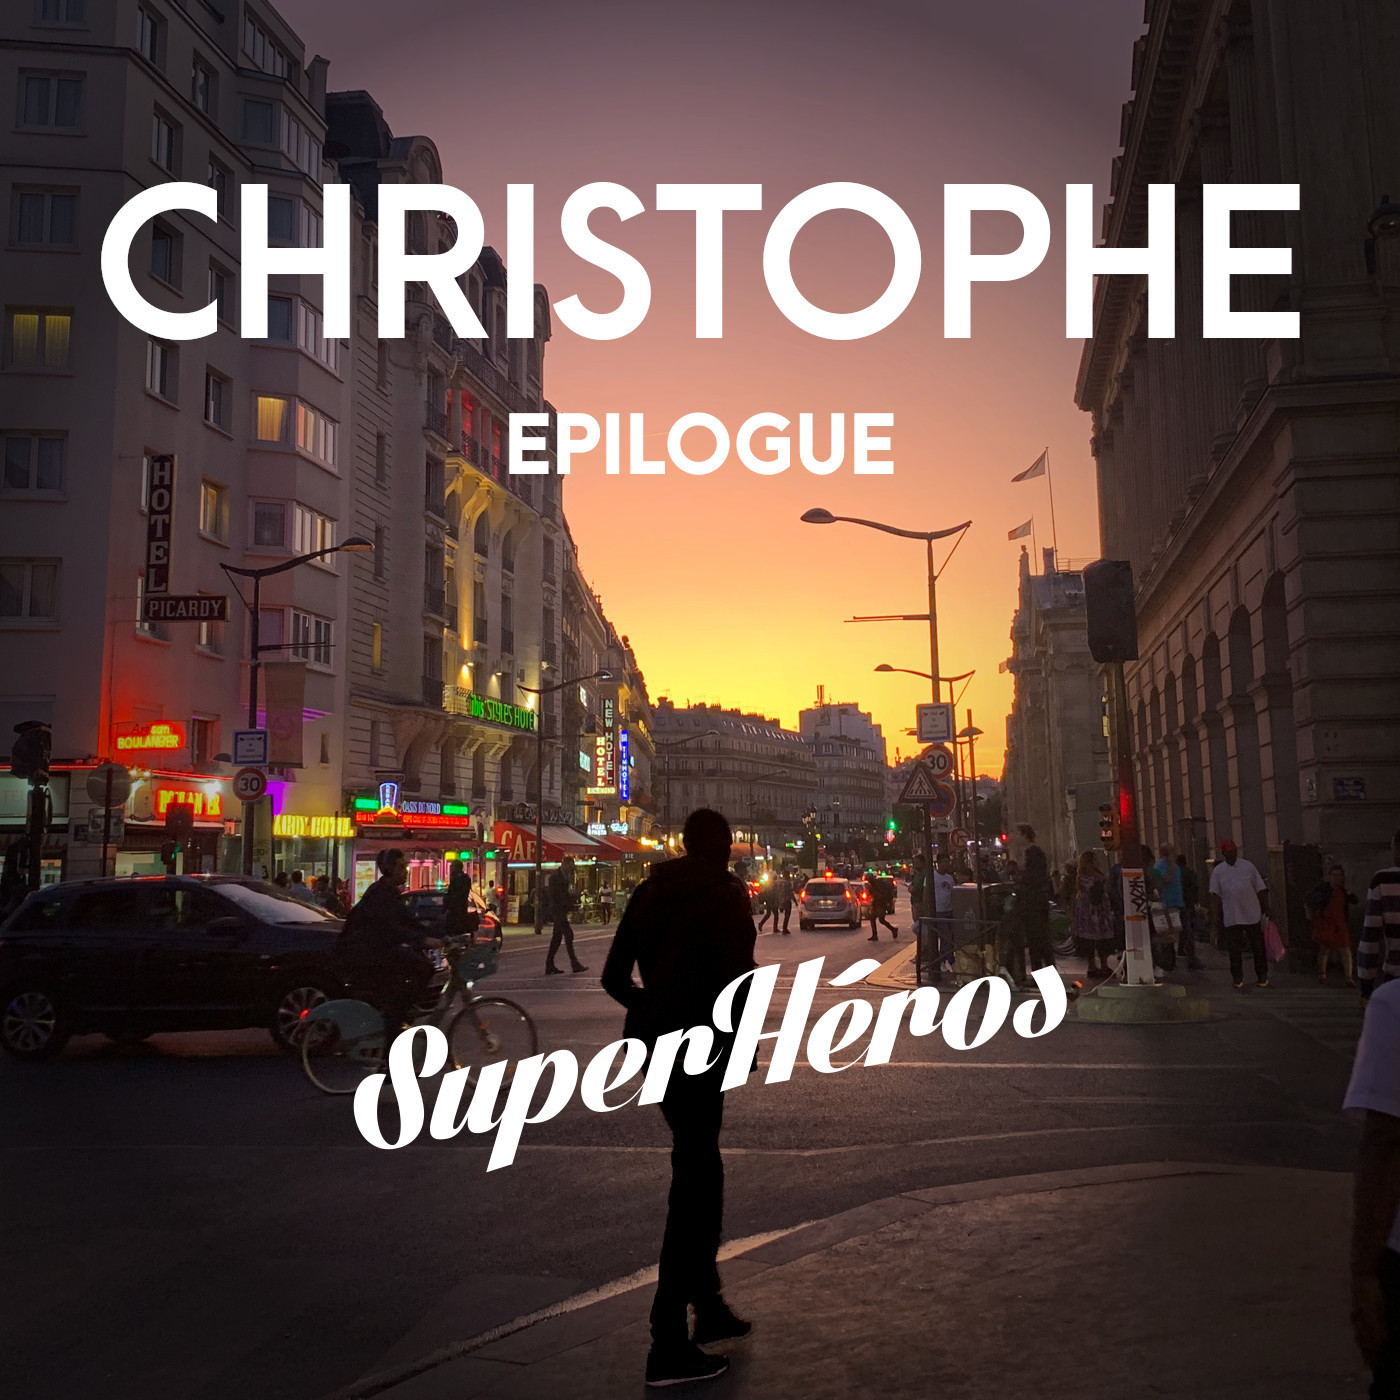 Christophe - Epilogue